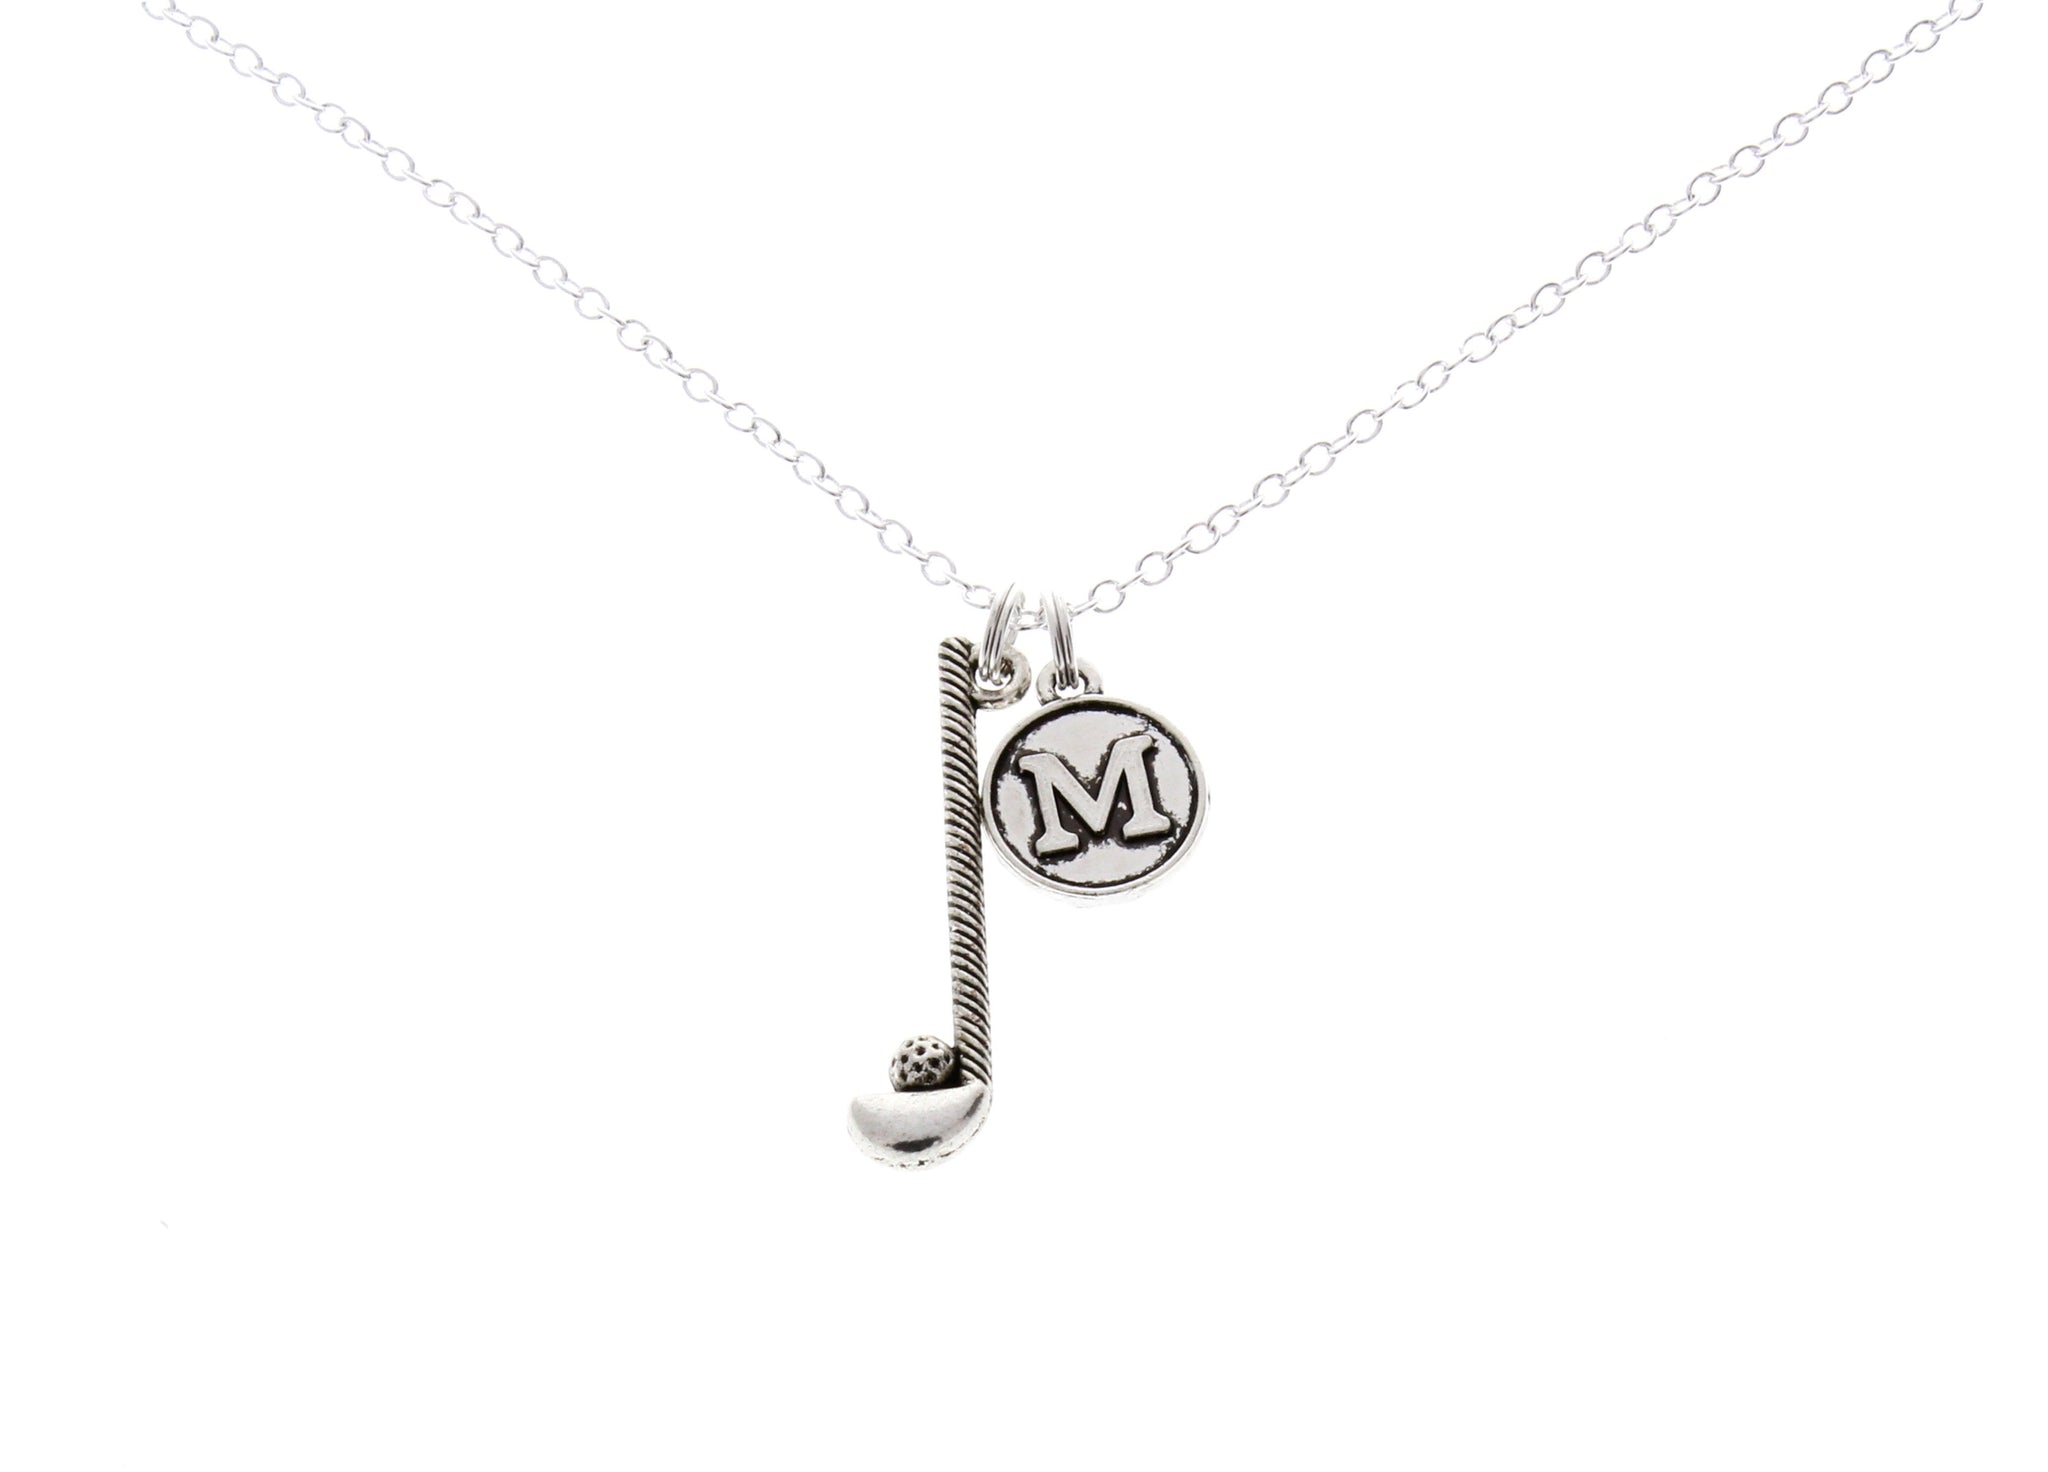 Golf Club Necklace with Initial Charm